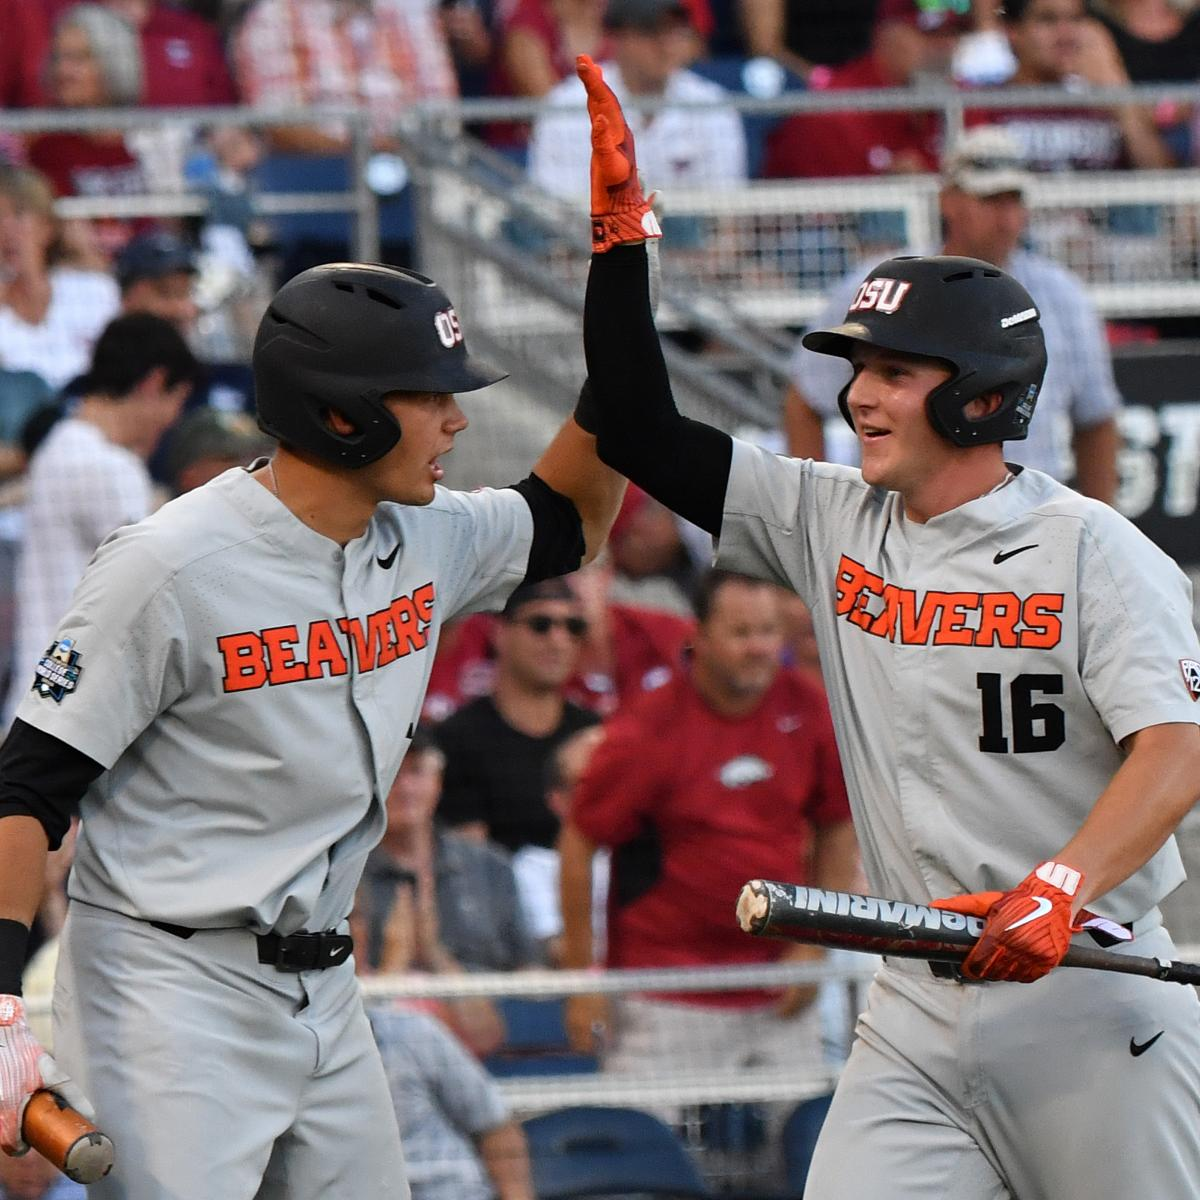 Oregon St. Rallies to Even Series vs. Arkansas in College World Series Game 2